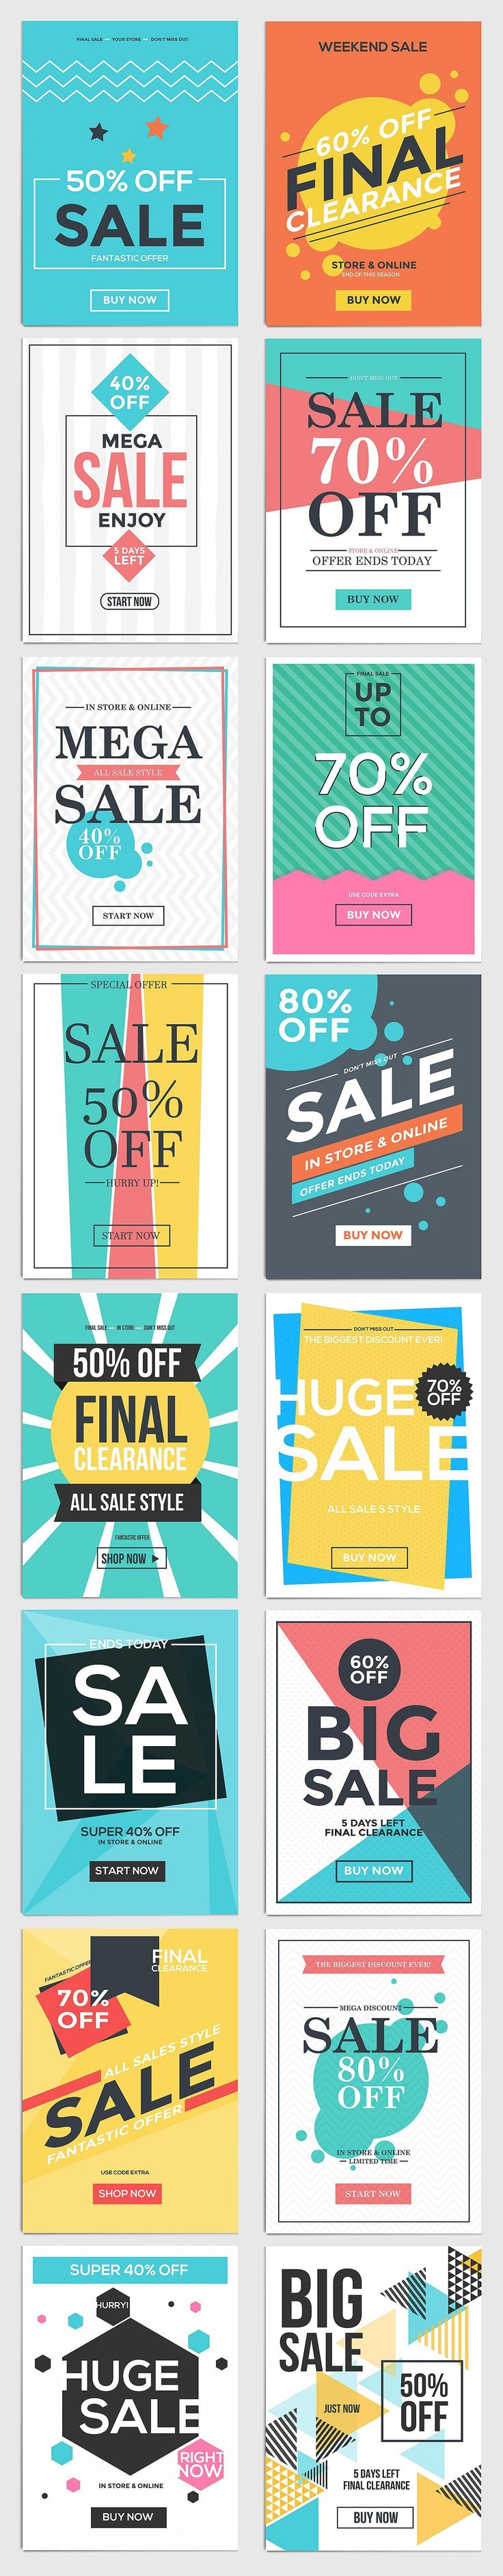 Flat design sale flyer templates